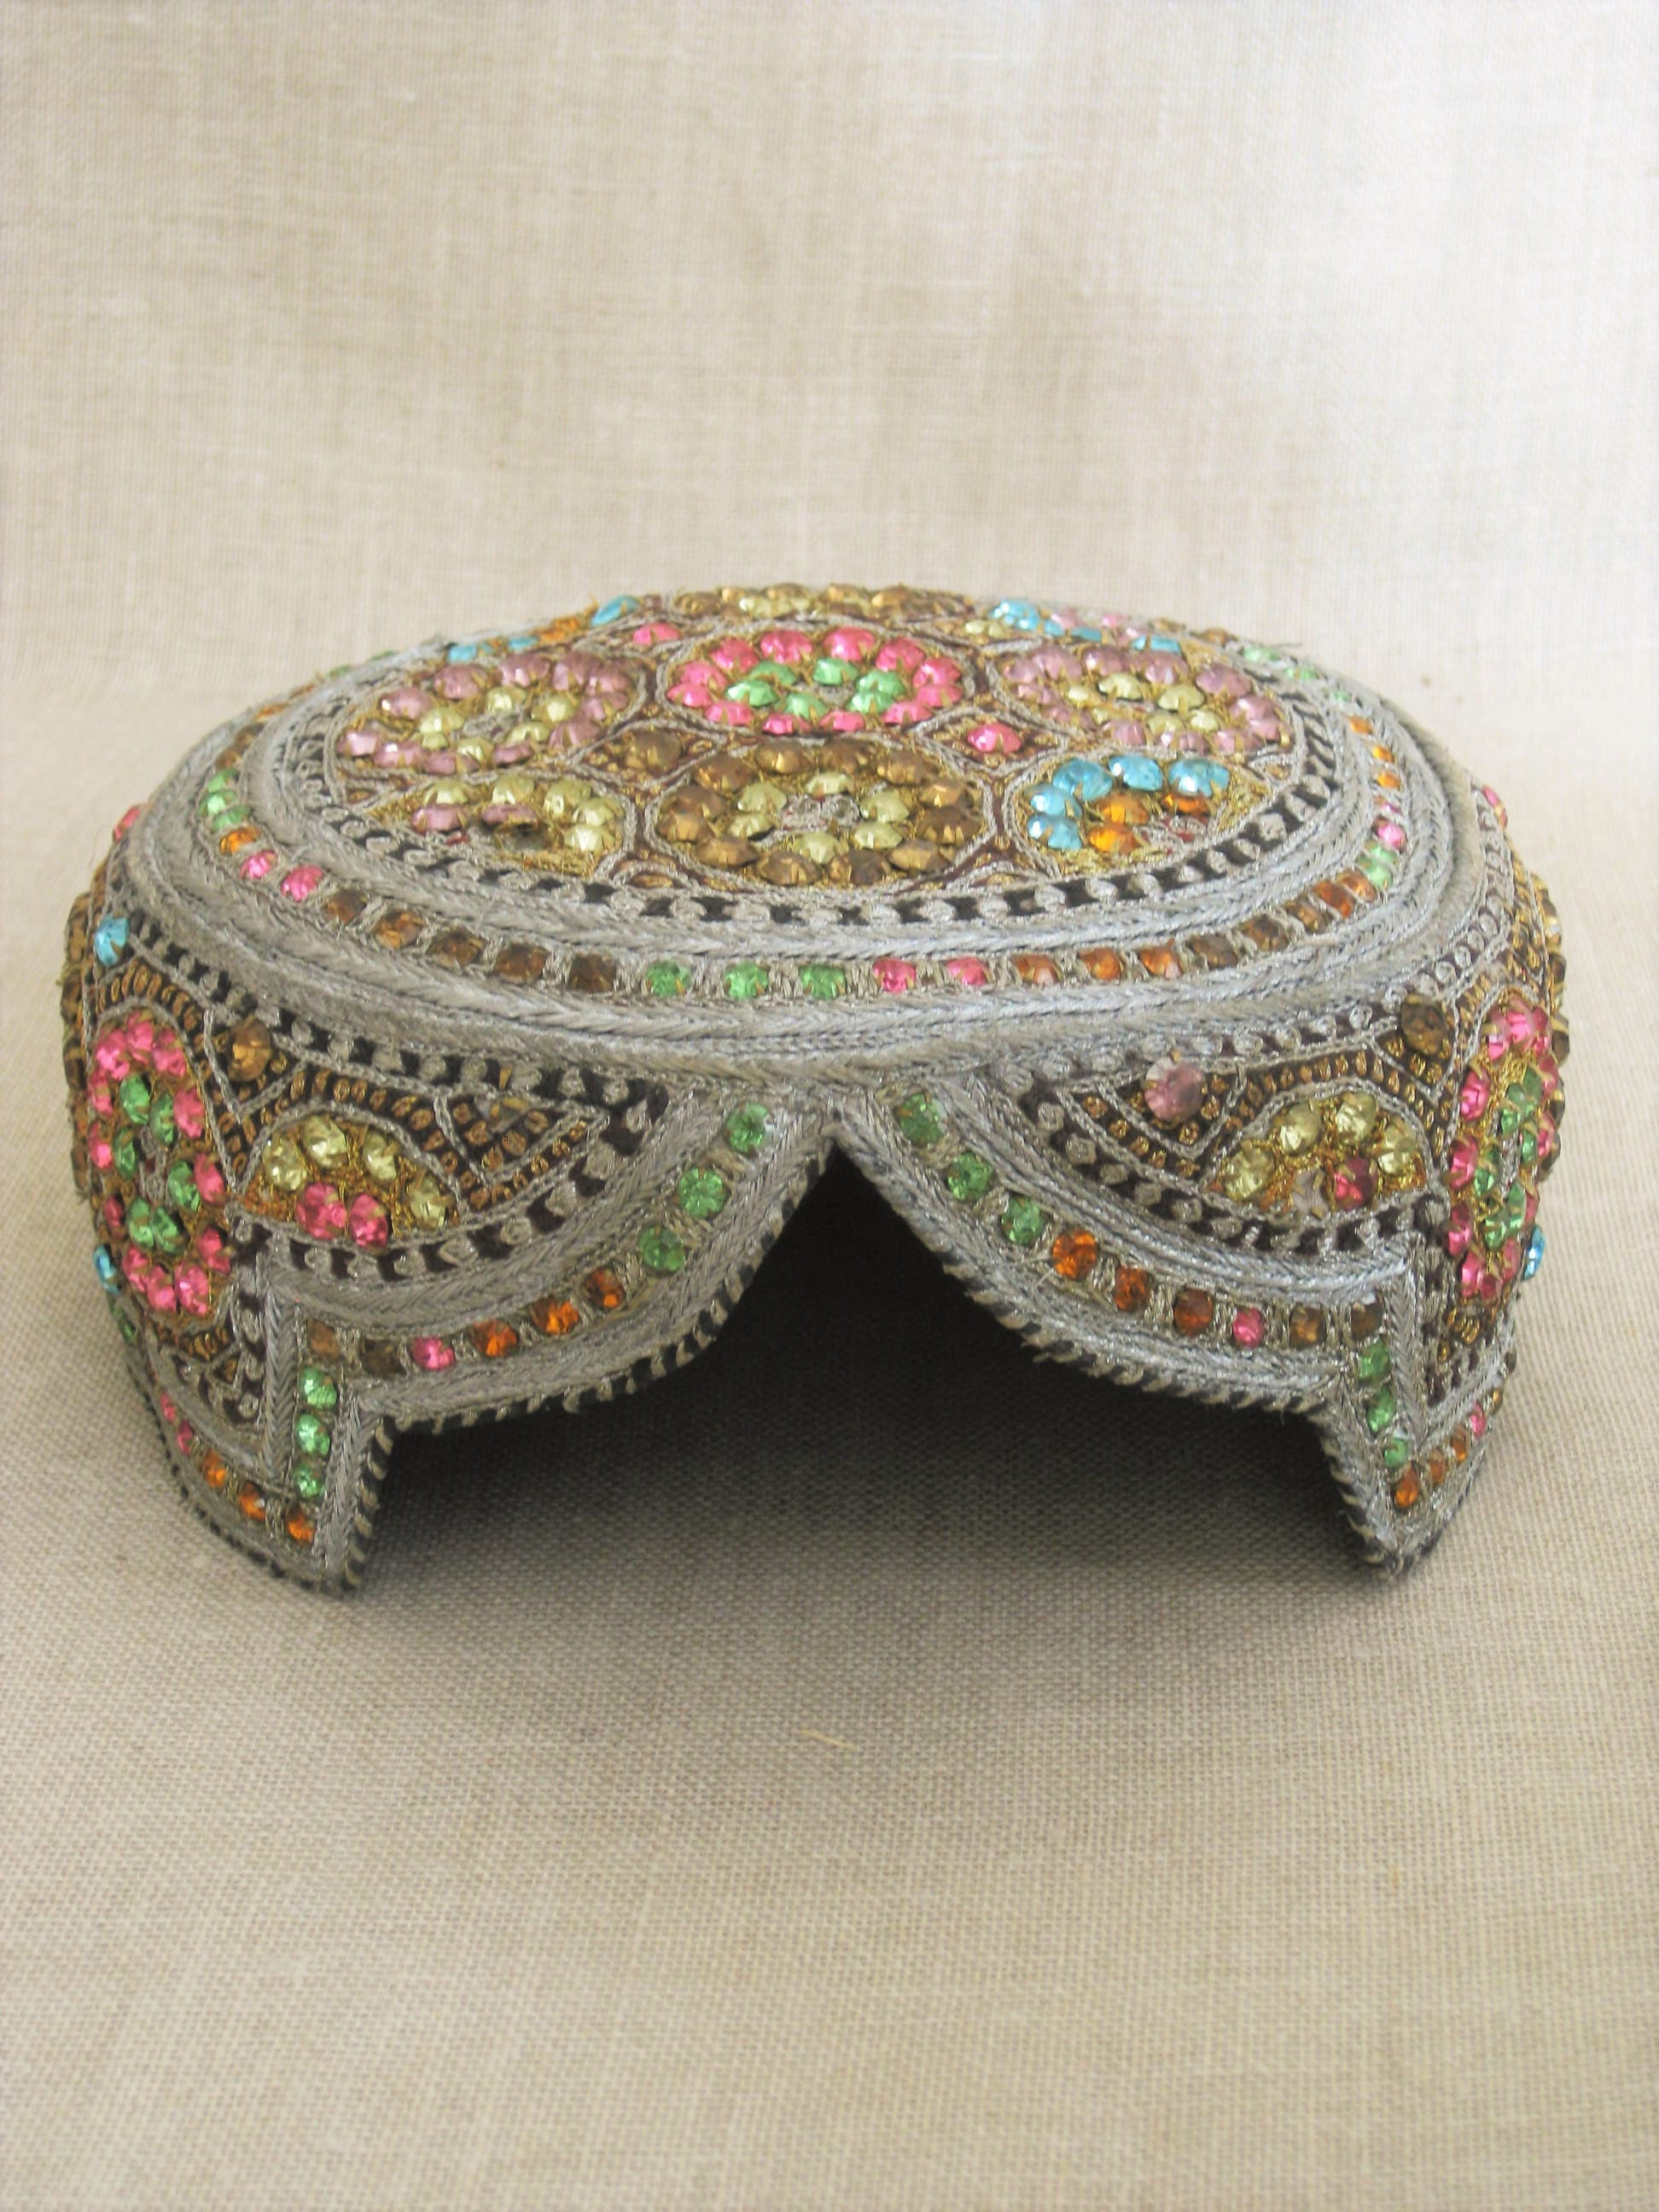 Vintage Jeweled Pakistani Skull Cap Bejeweled Pillbox